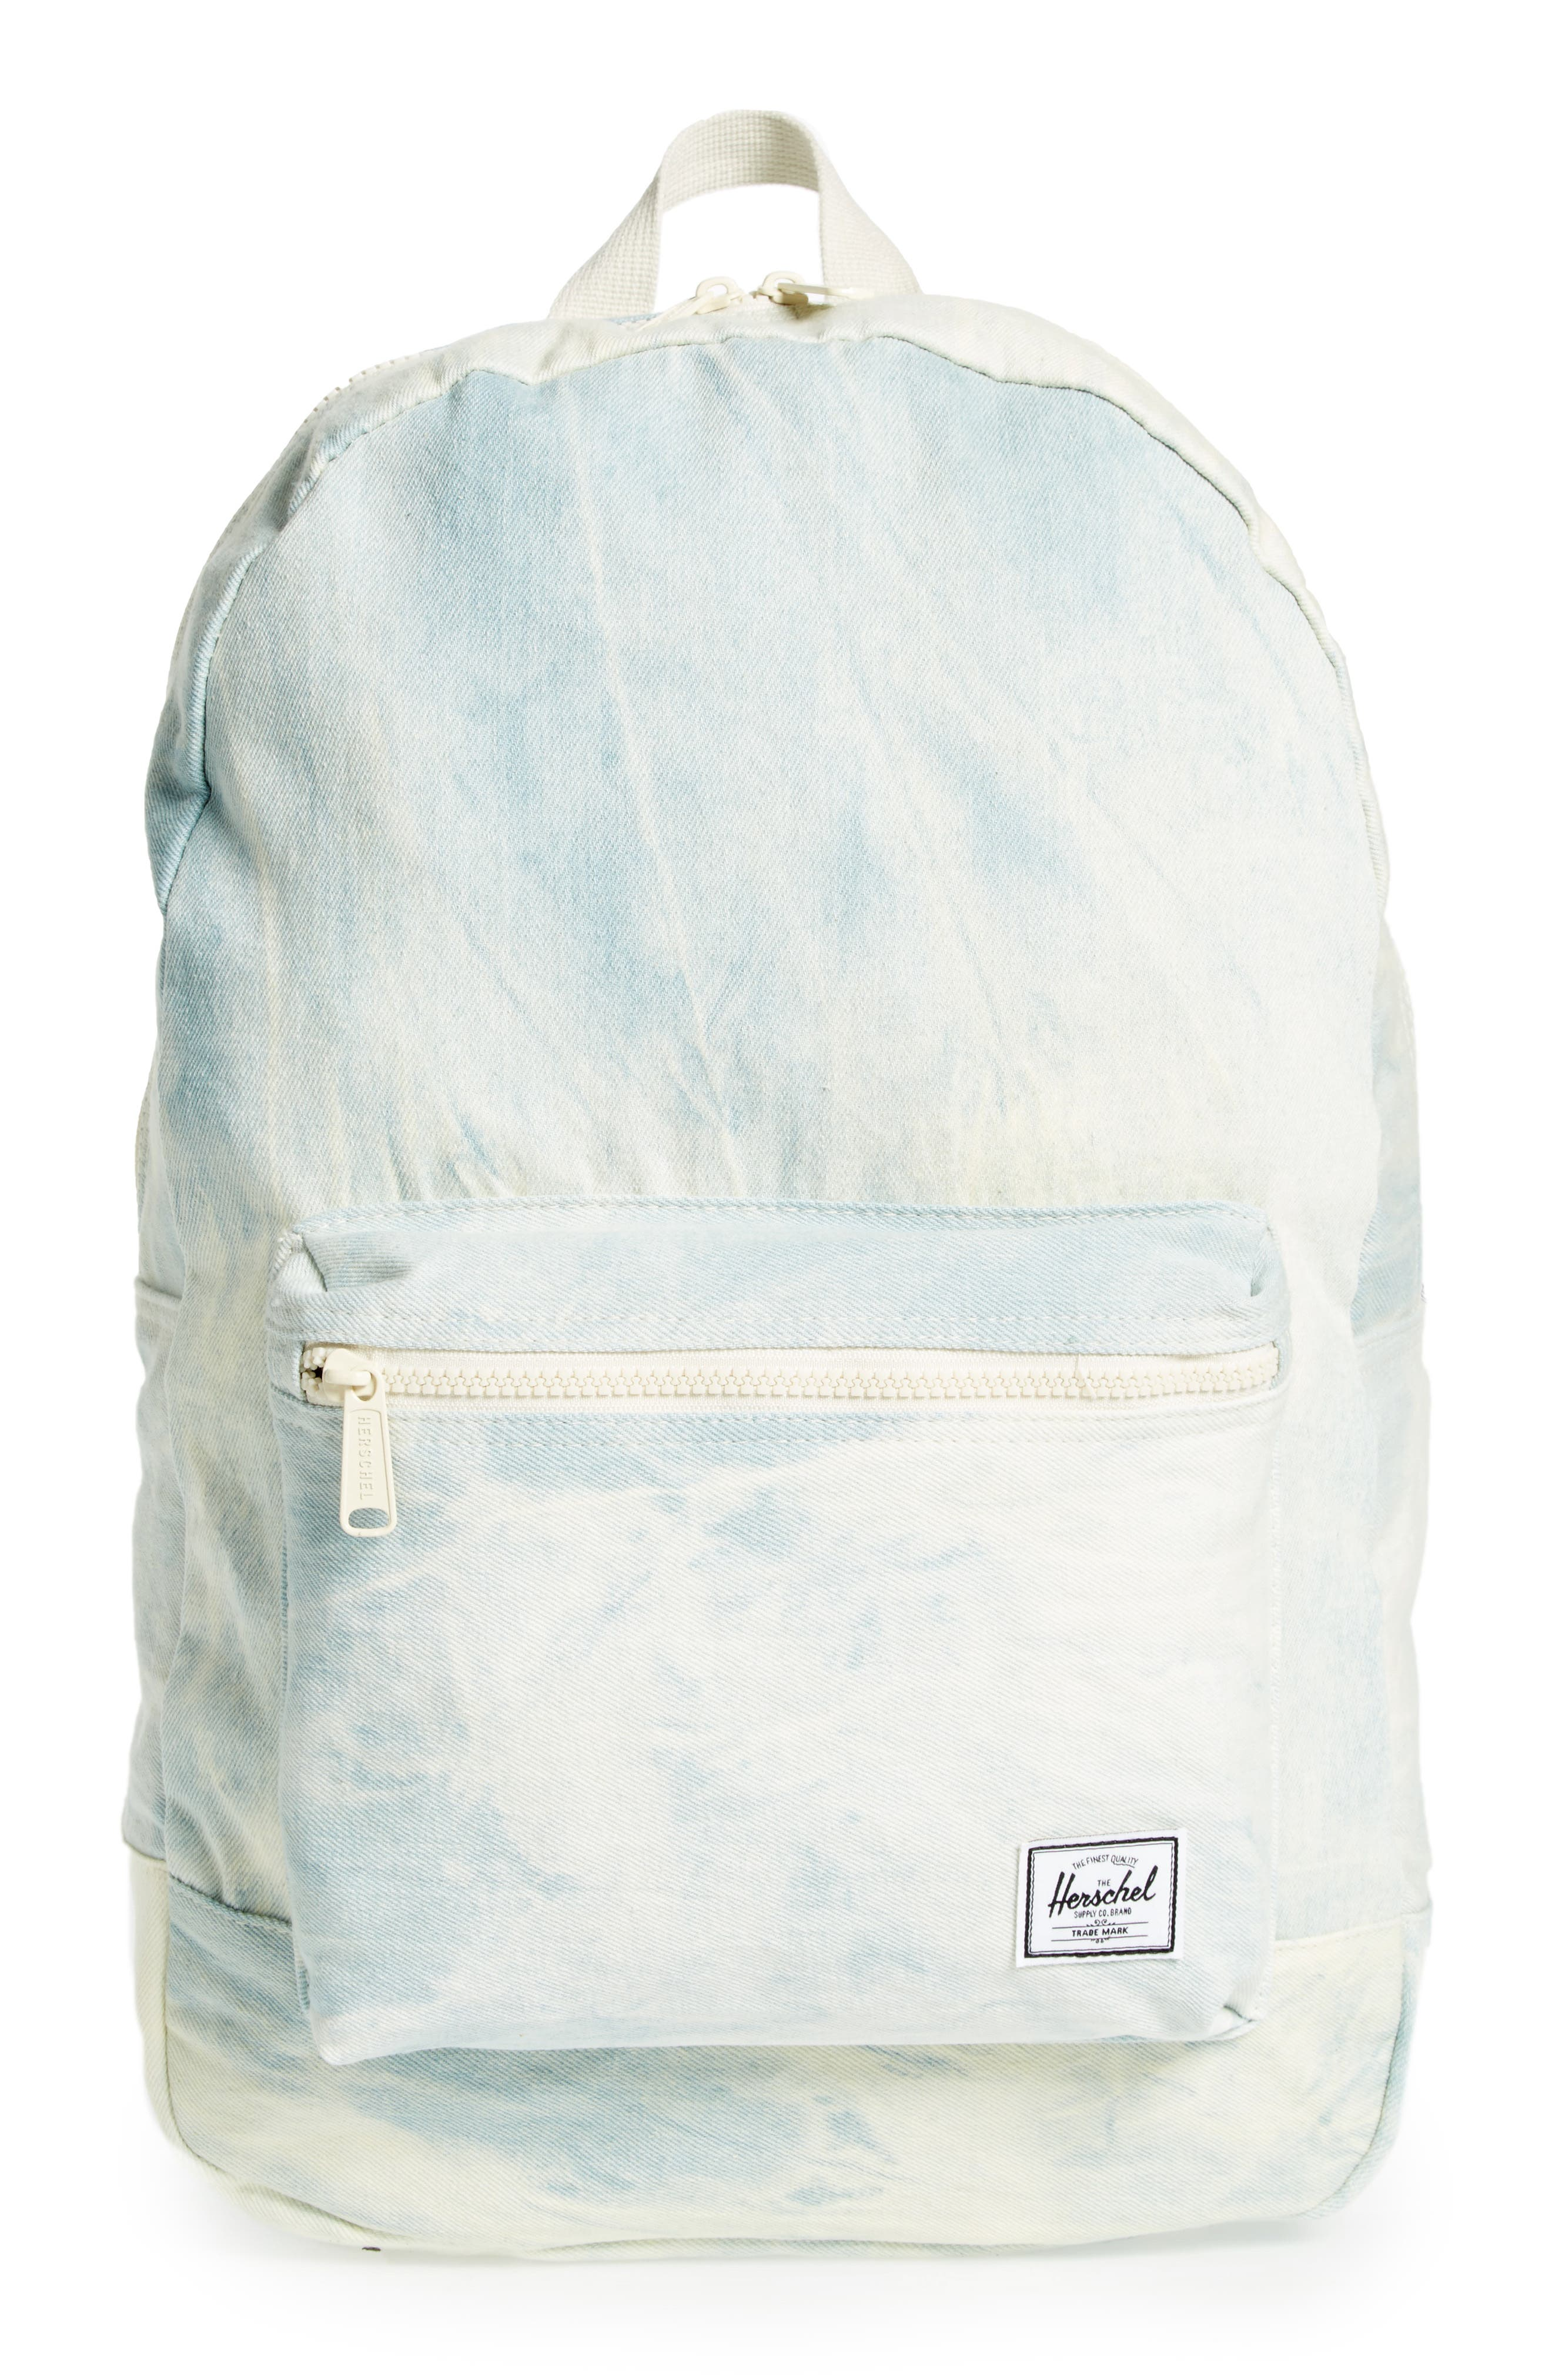 Cotton Casuals Daypack Backpack,                             Main thumbnail 1, color,                             Bleach Denim